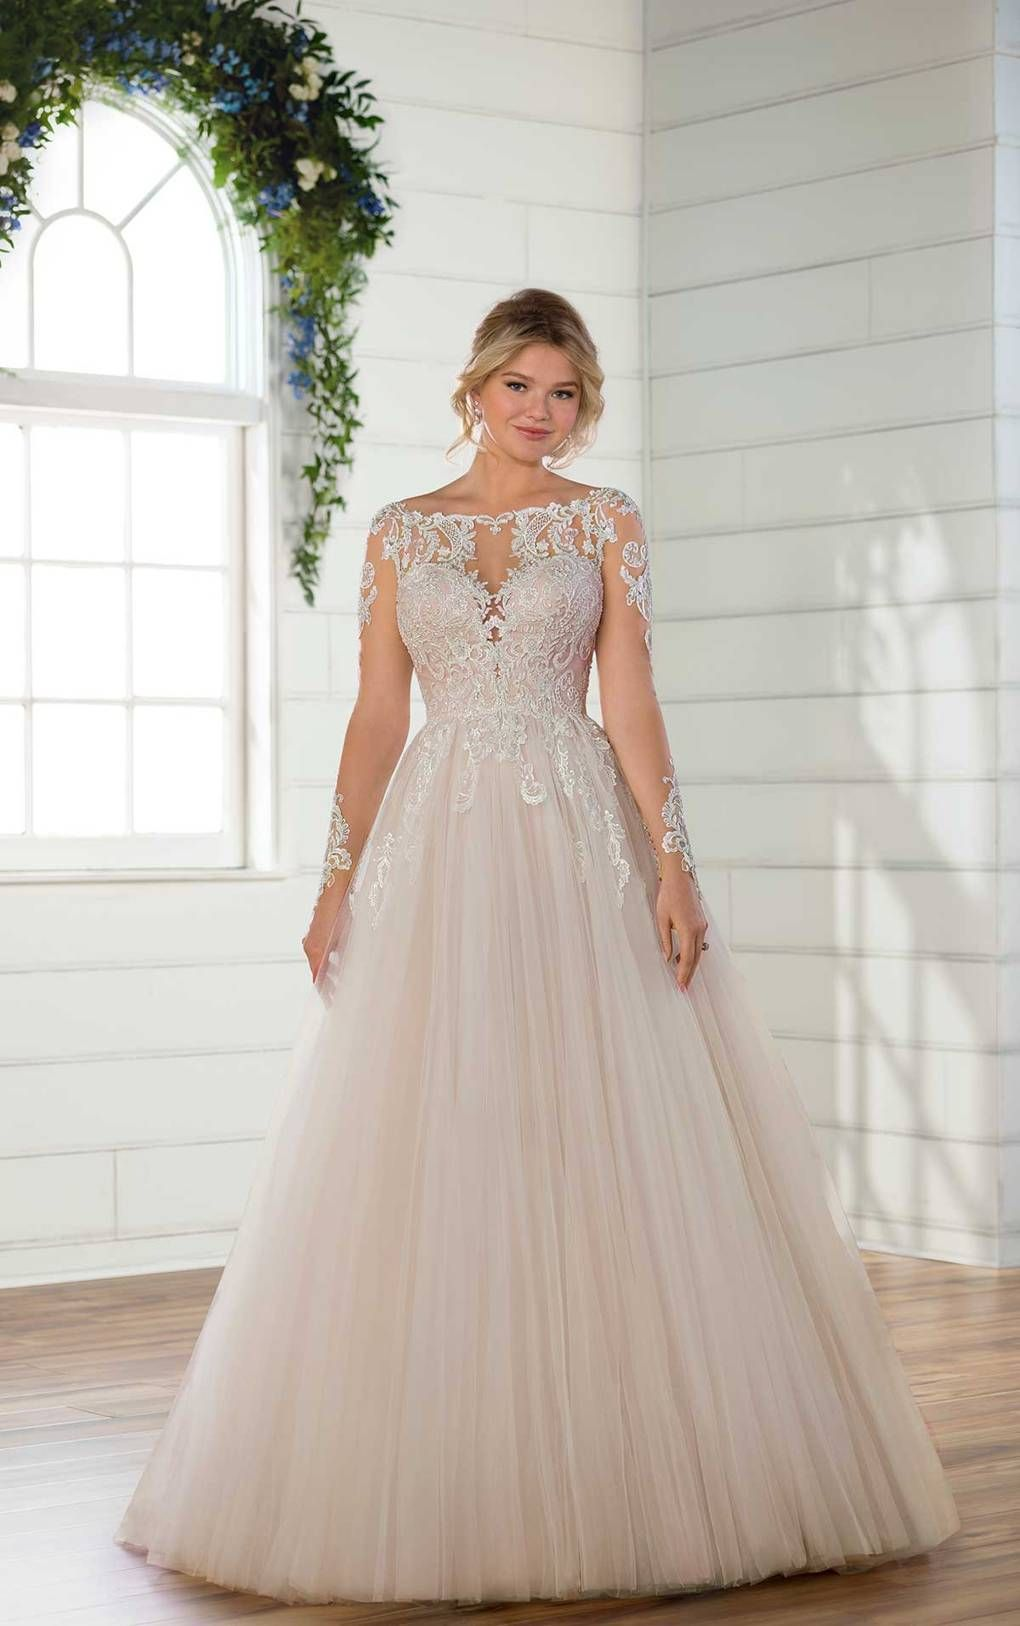 Cheap wedding dresses under 50   Wedding Dresses With Sleeves  Meredithus wedding  Pinterest